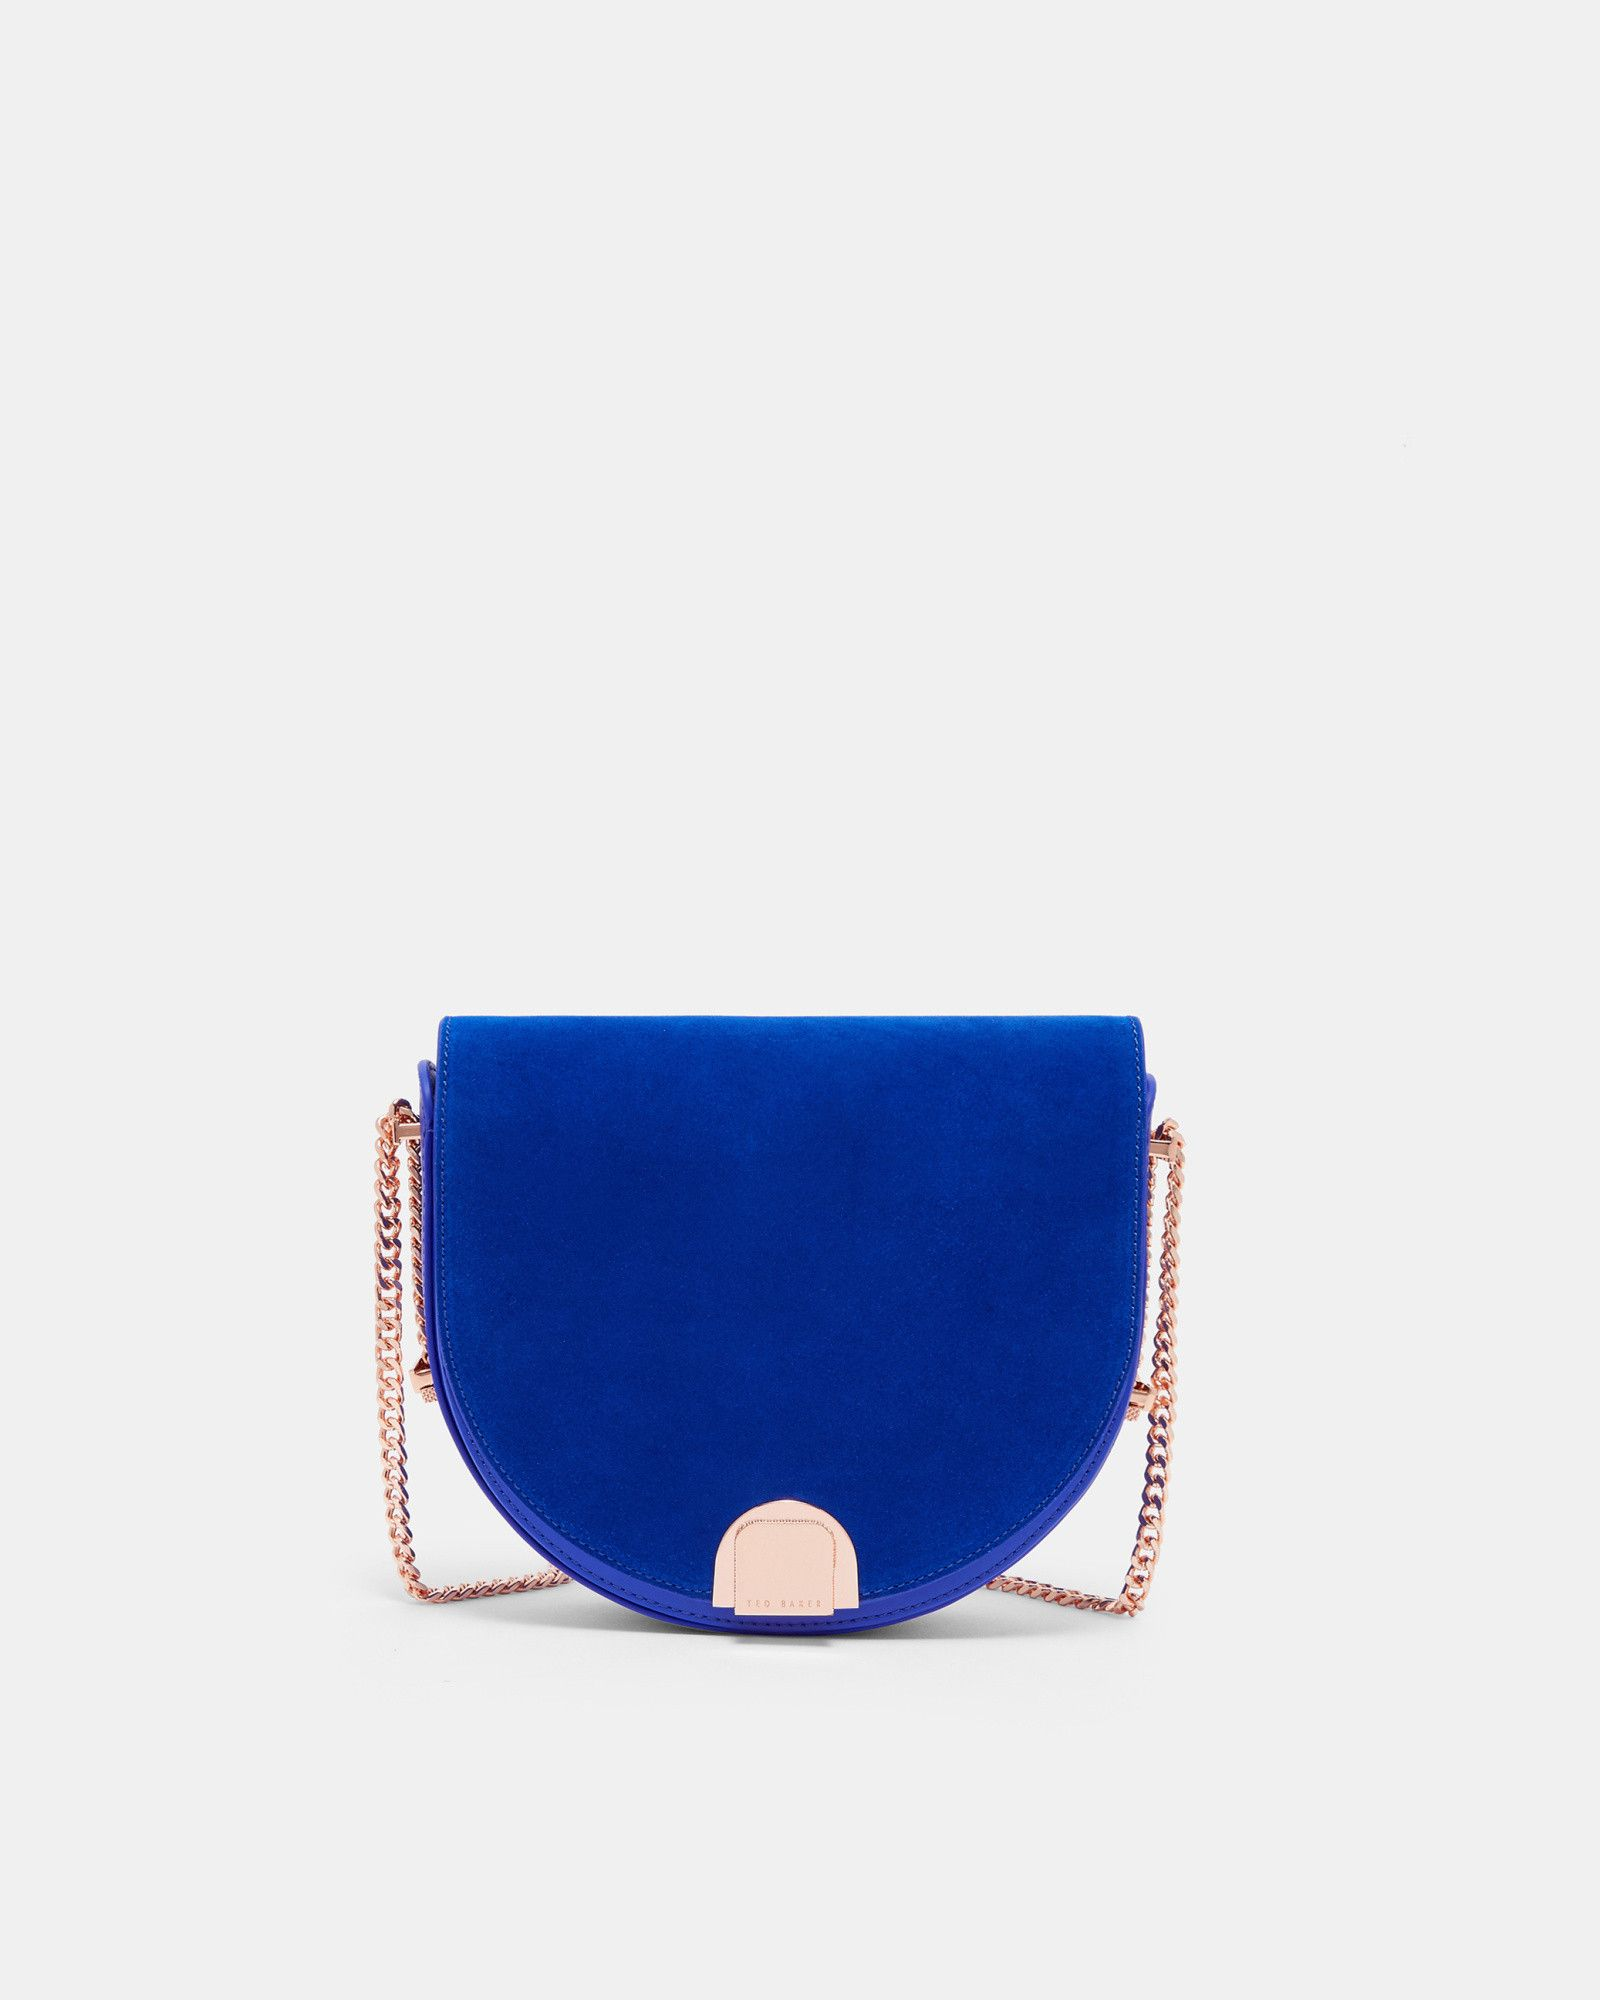 cdf10a246 Ted Baker Mini suede moon shaped bag Bright Blue | wants...needs ...